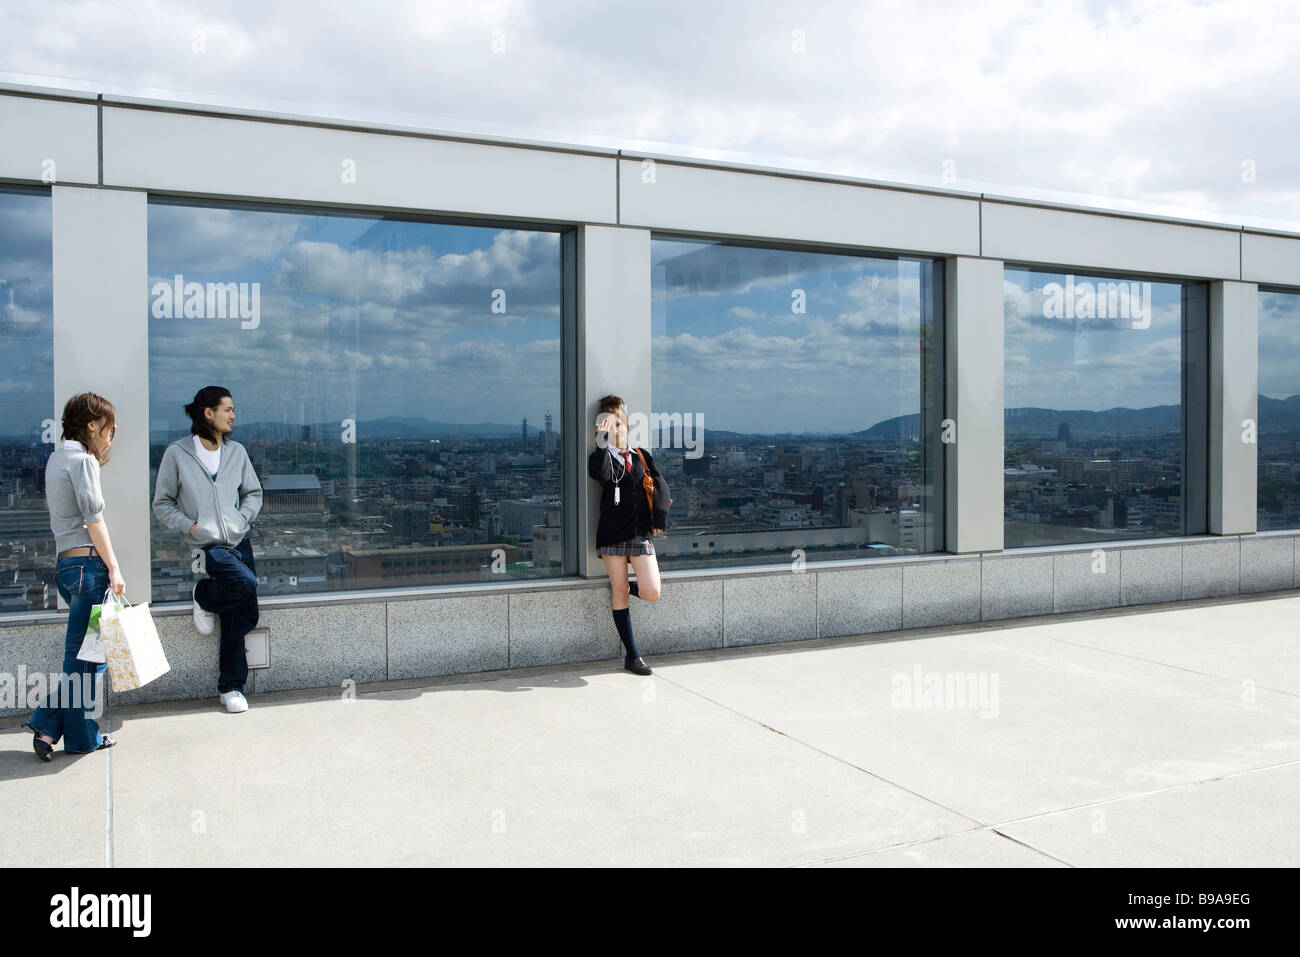 Three young friends leaning against glass wall overlooking city, Kyoto, Japan - Stock Image